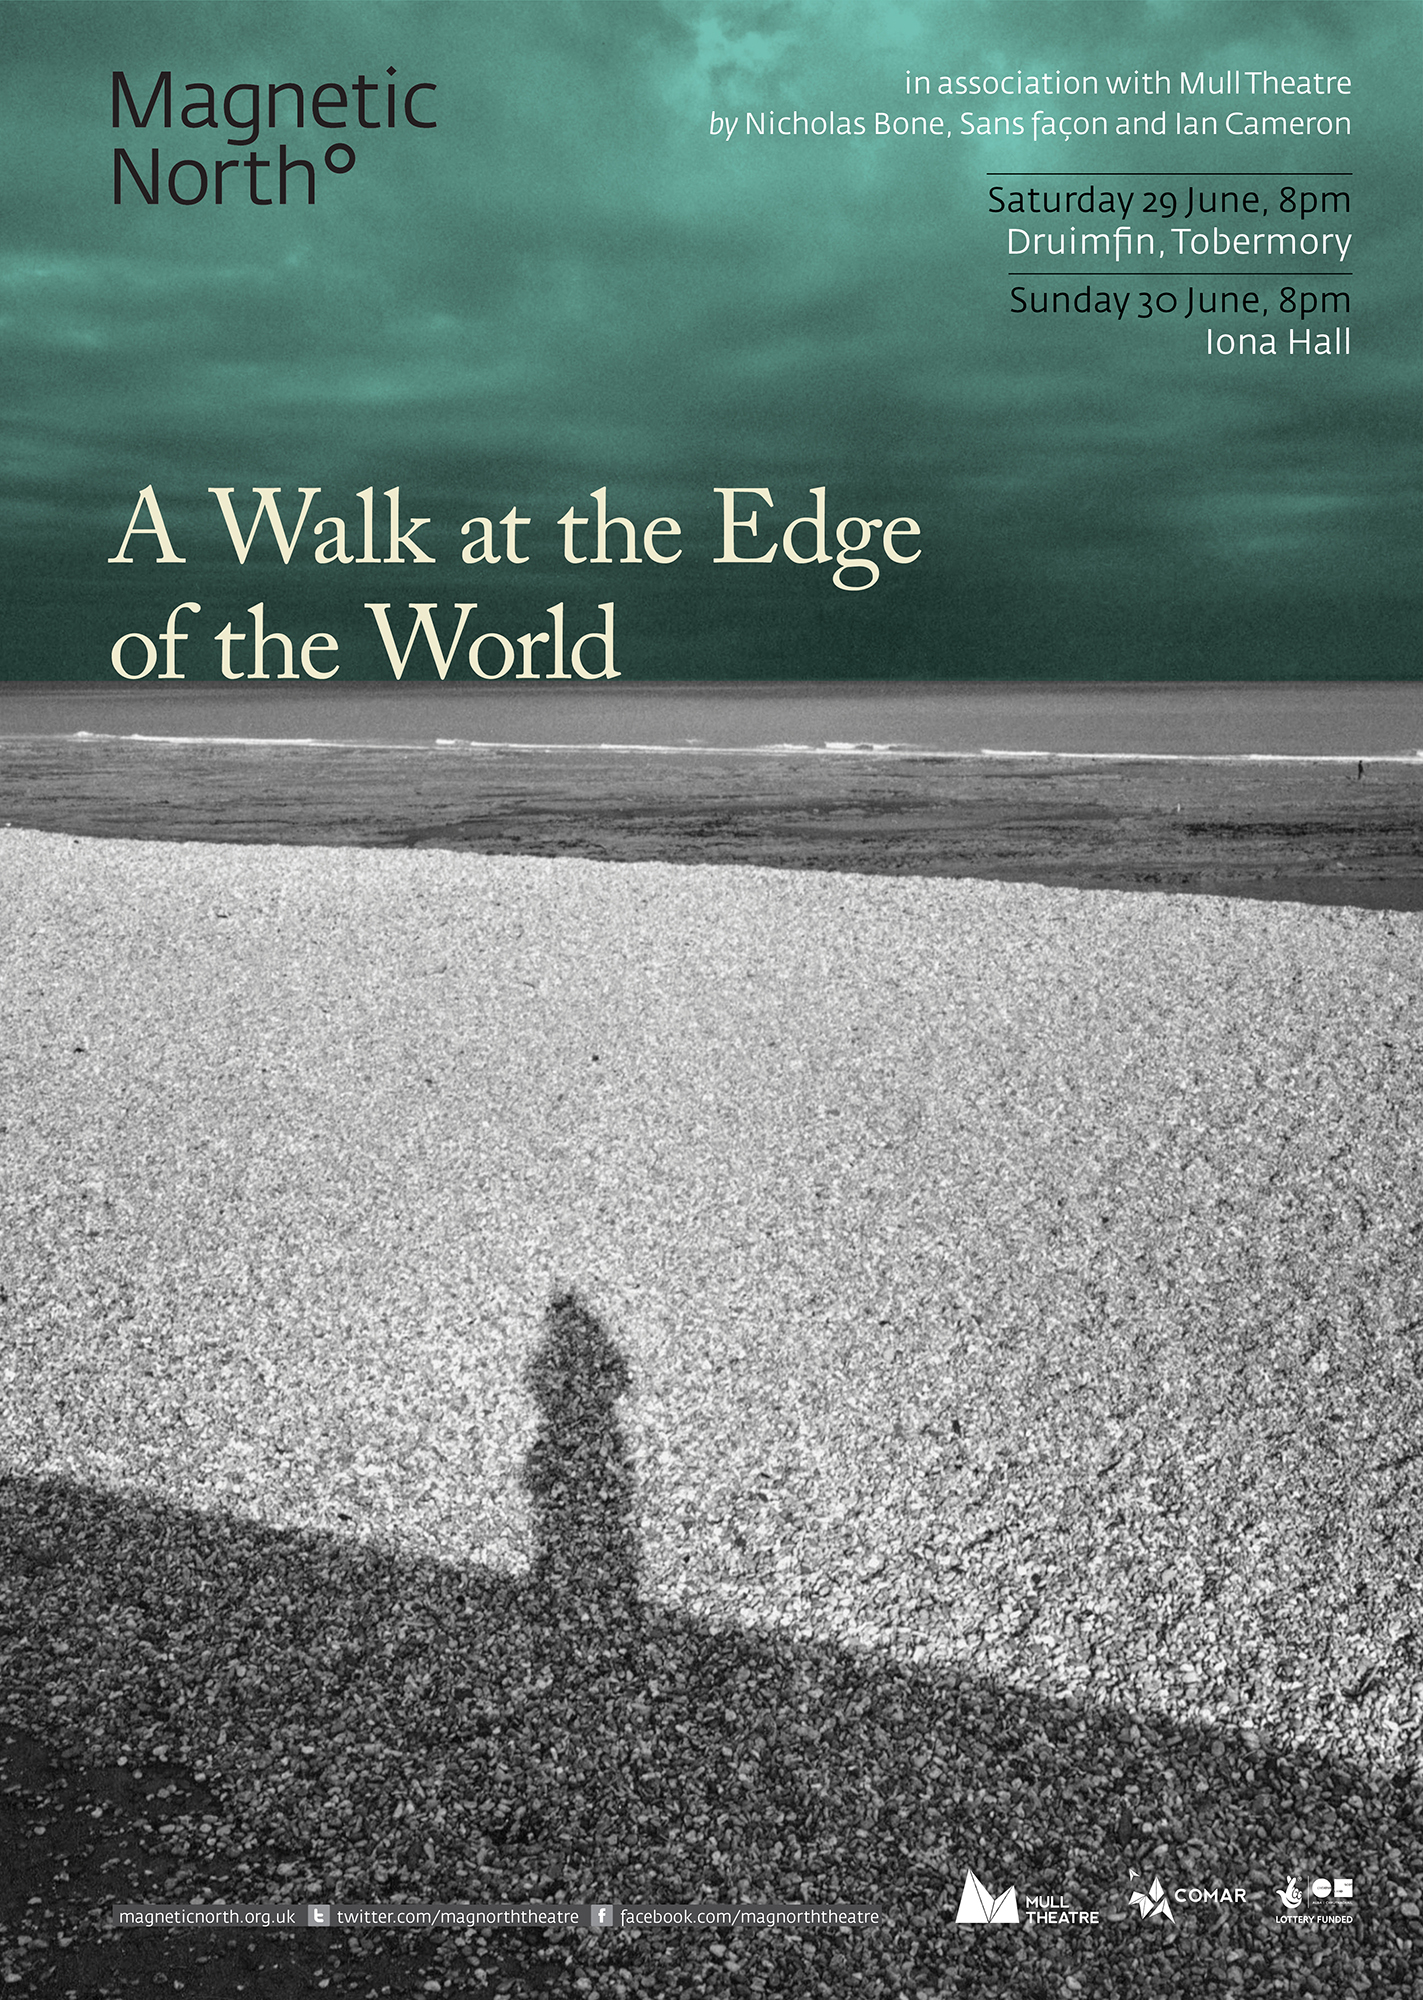 A Walk at the Edge of the World